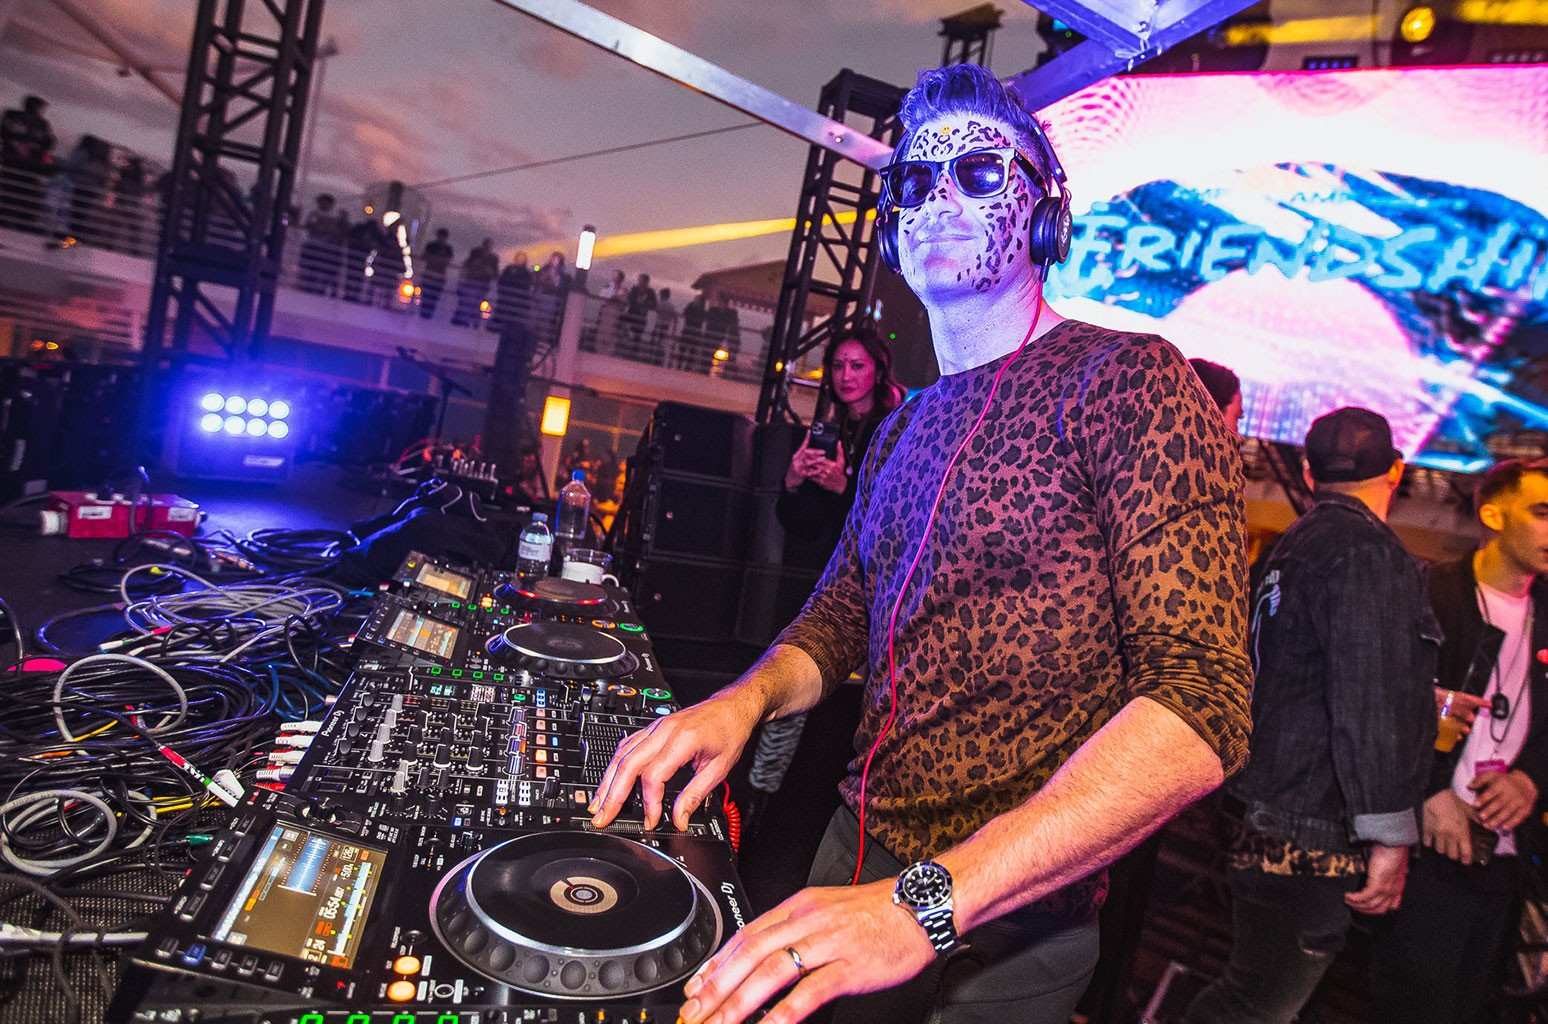 Destructo Gives Update on Signature Events AMF Music Festival & FriendShip